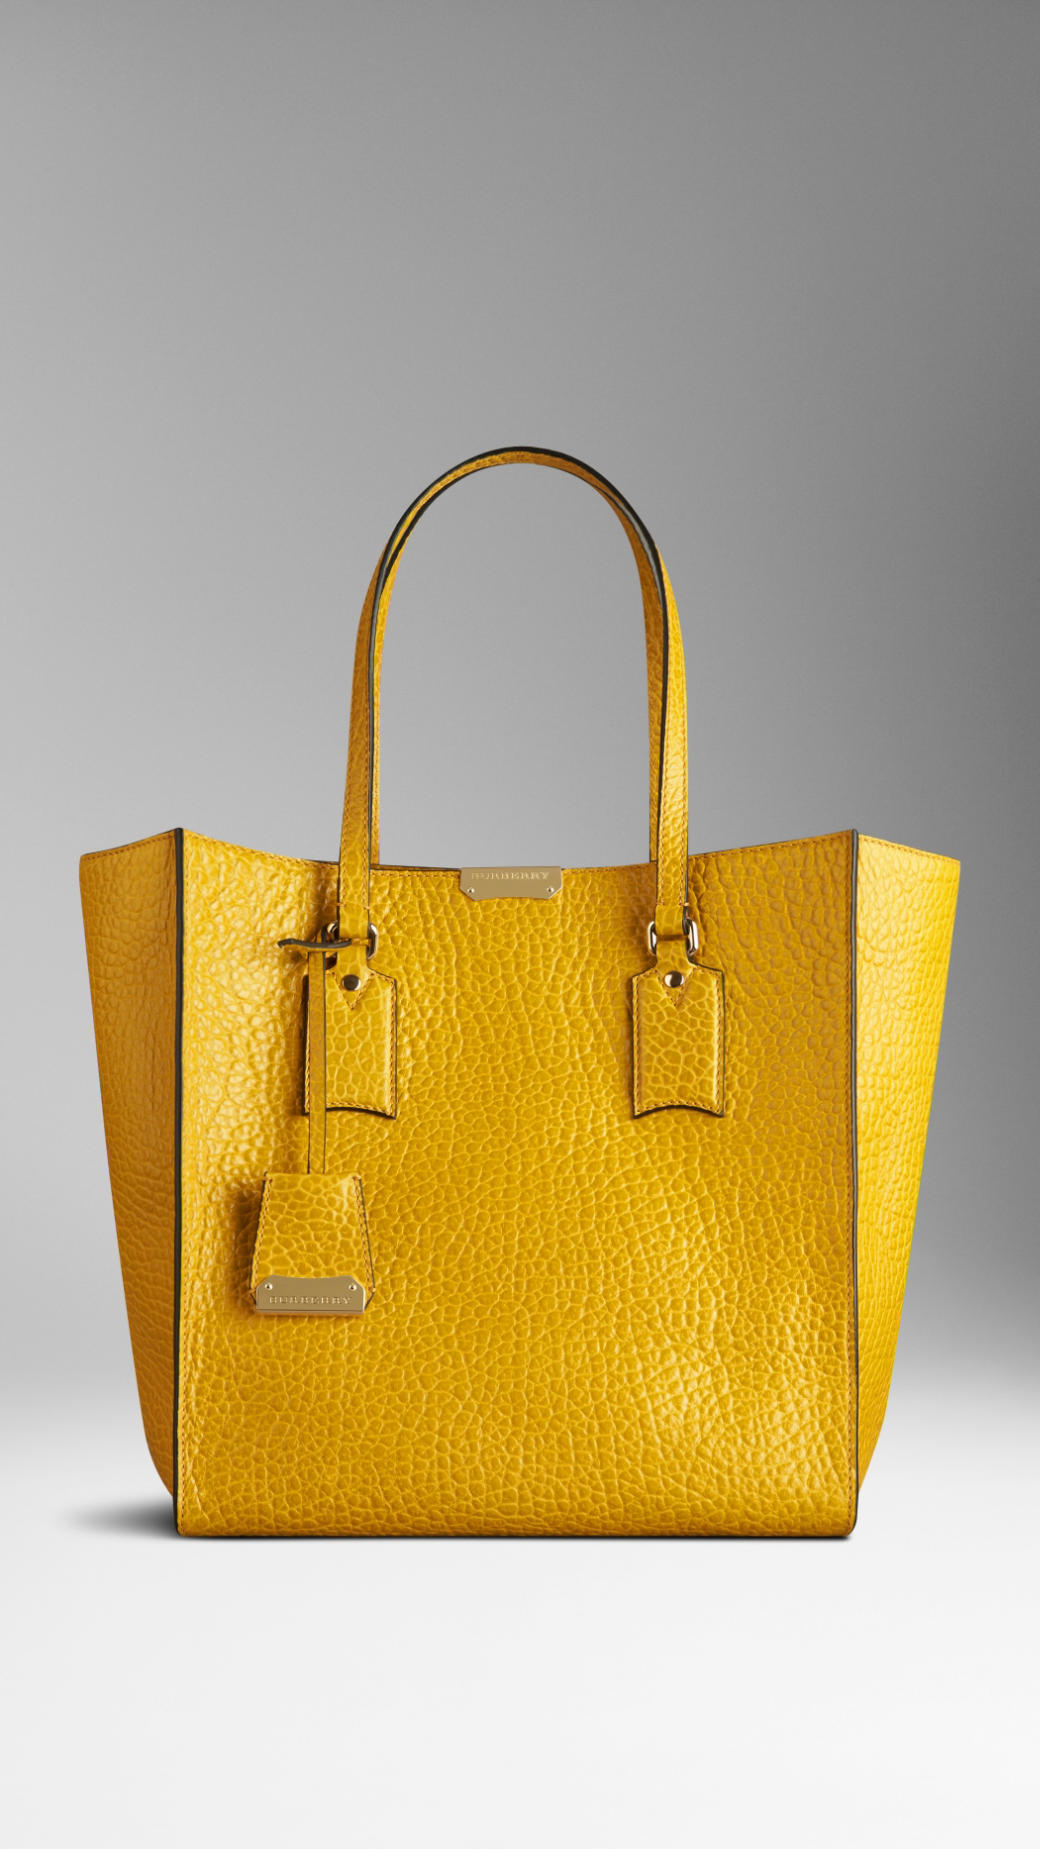 Lyst - Burberry Medium Heritage Grain Leather Tote Bag in Yellow